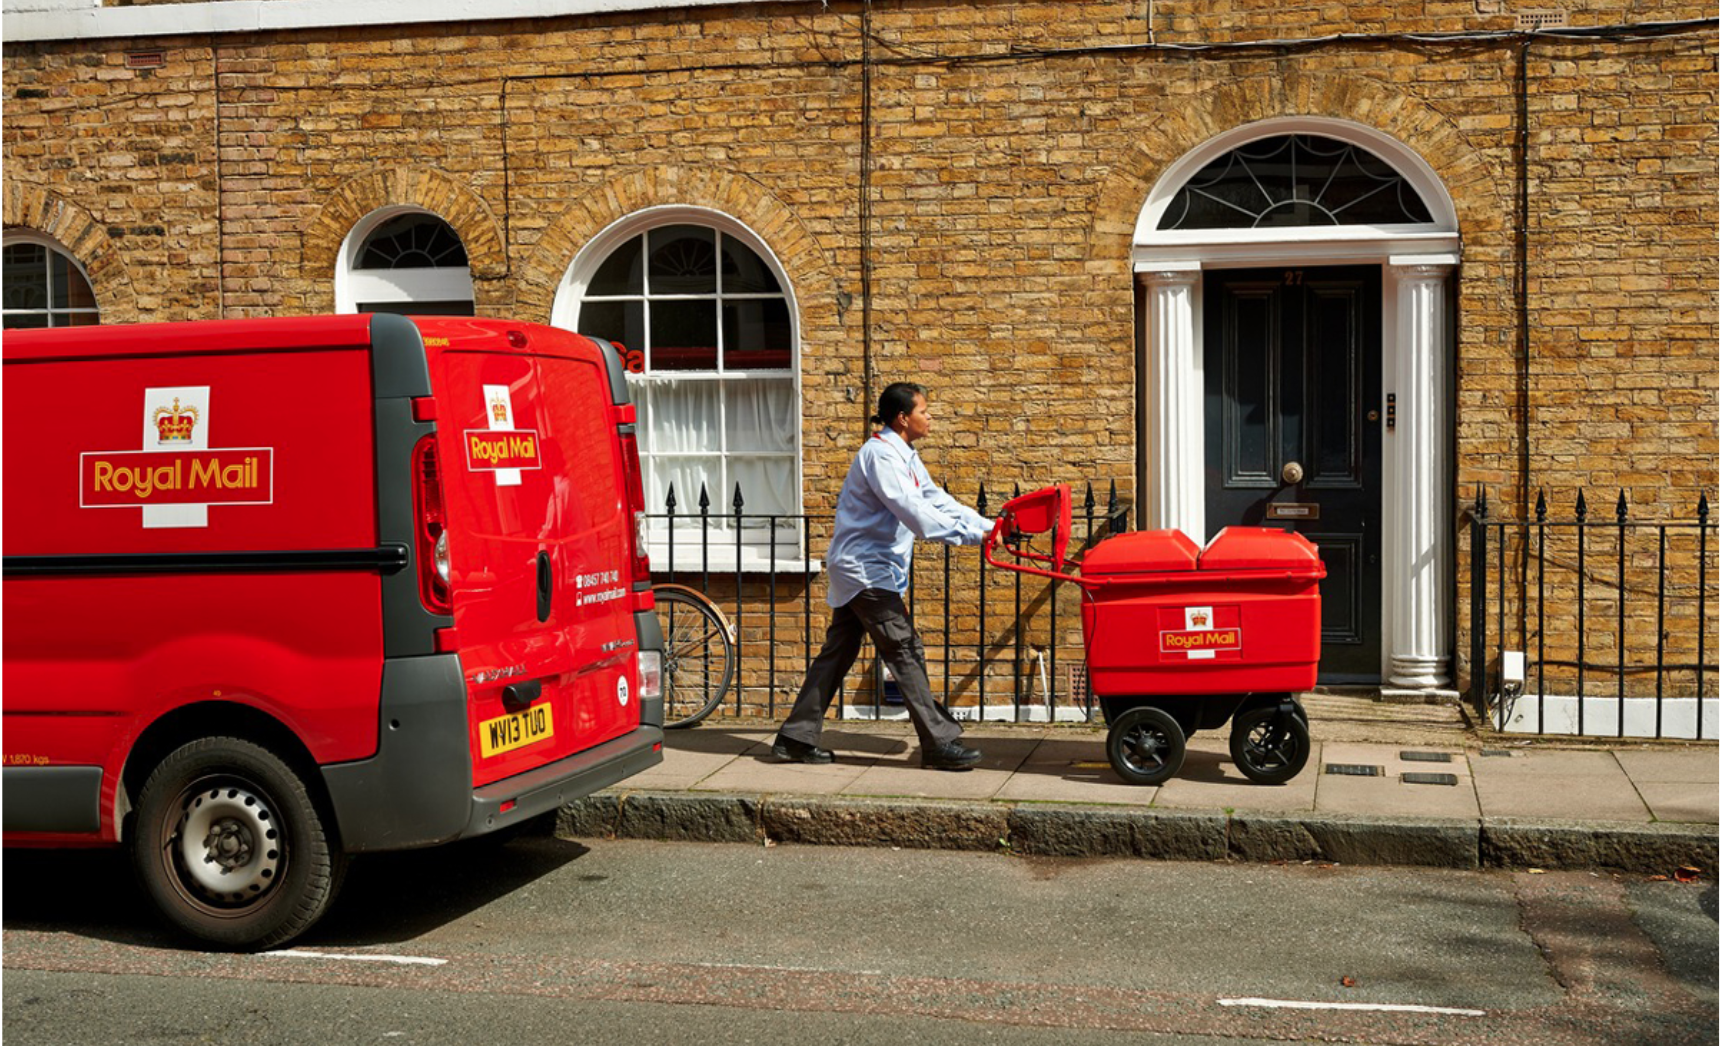 Above: The industry needs to be sure that greeting cards can be delivered efficiently by Royal Mail.